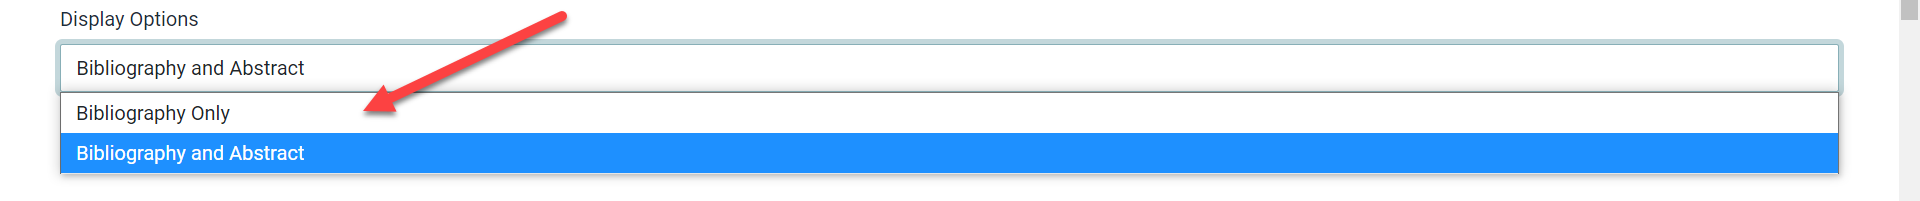 The Display Options field is shown with an arrow pointing to the drop-down options.